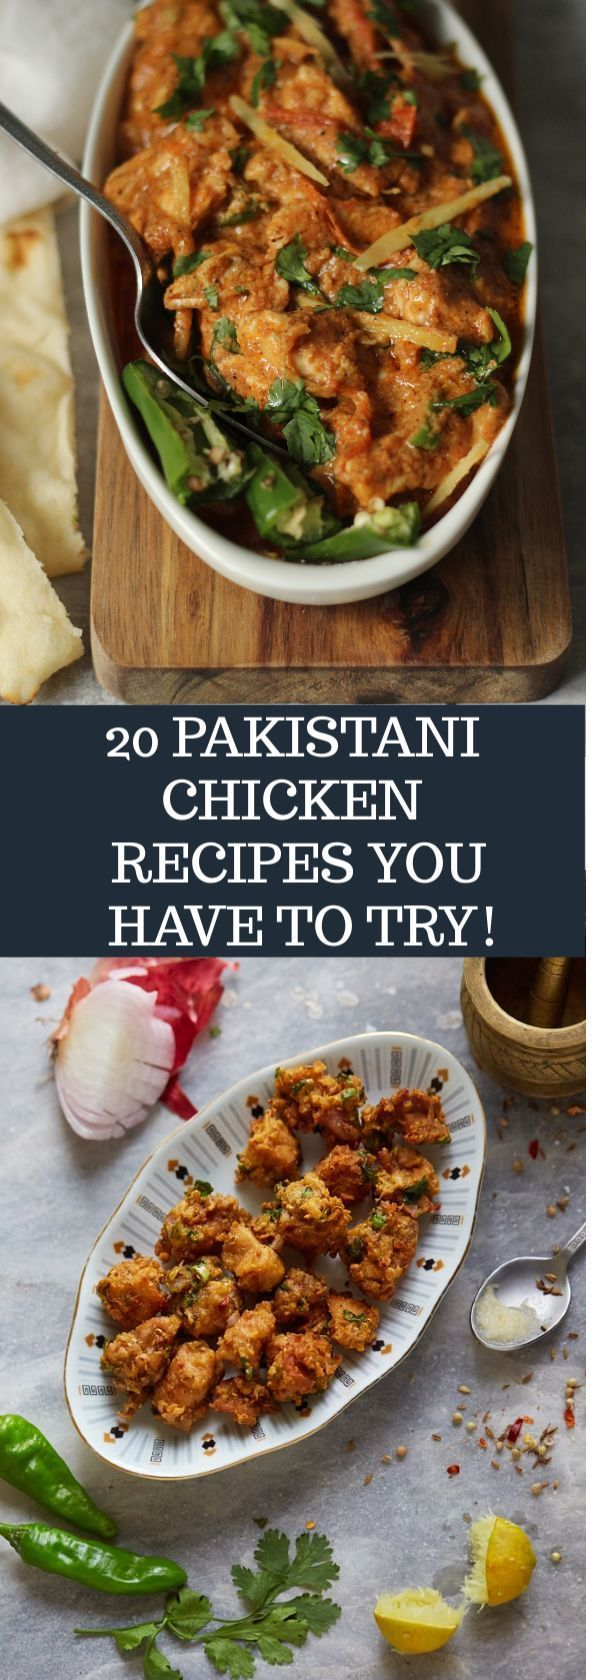 20 Pakistani Chicken Recipes You HAVE to Make! 20 …